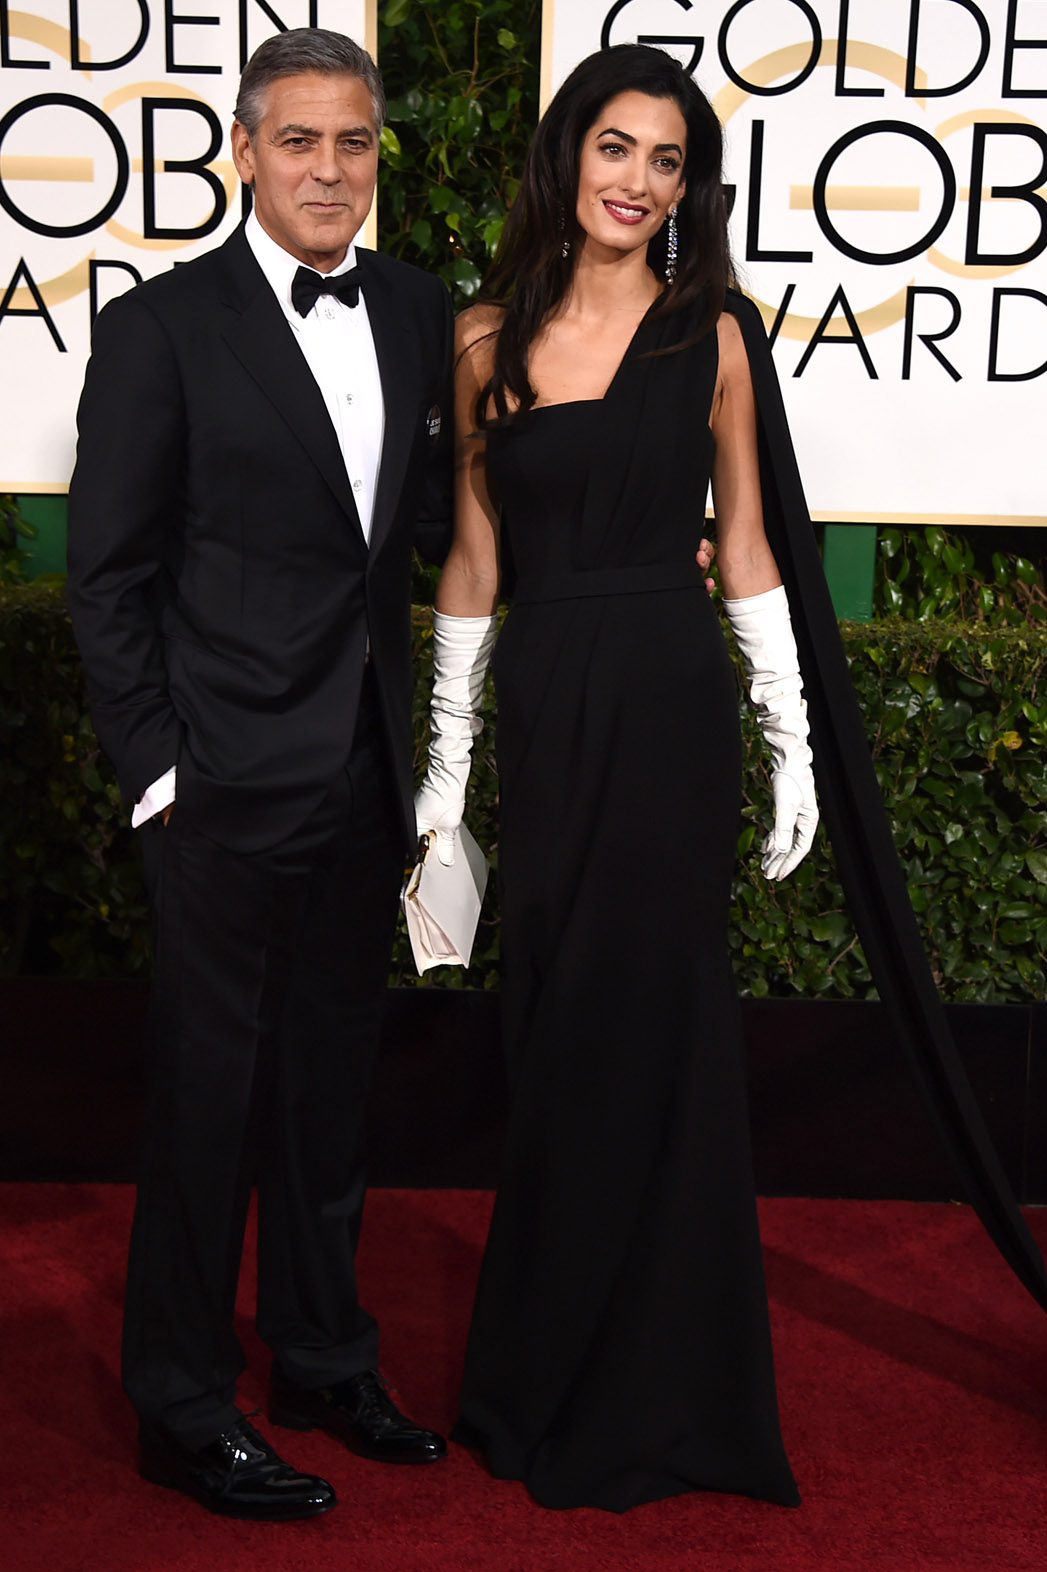 George Clooney Wears Wedding Tux To The Golden Globes Hollywood Reporter